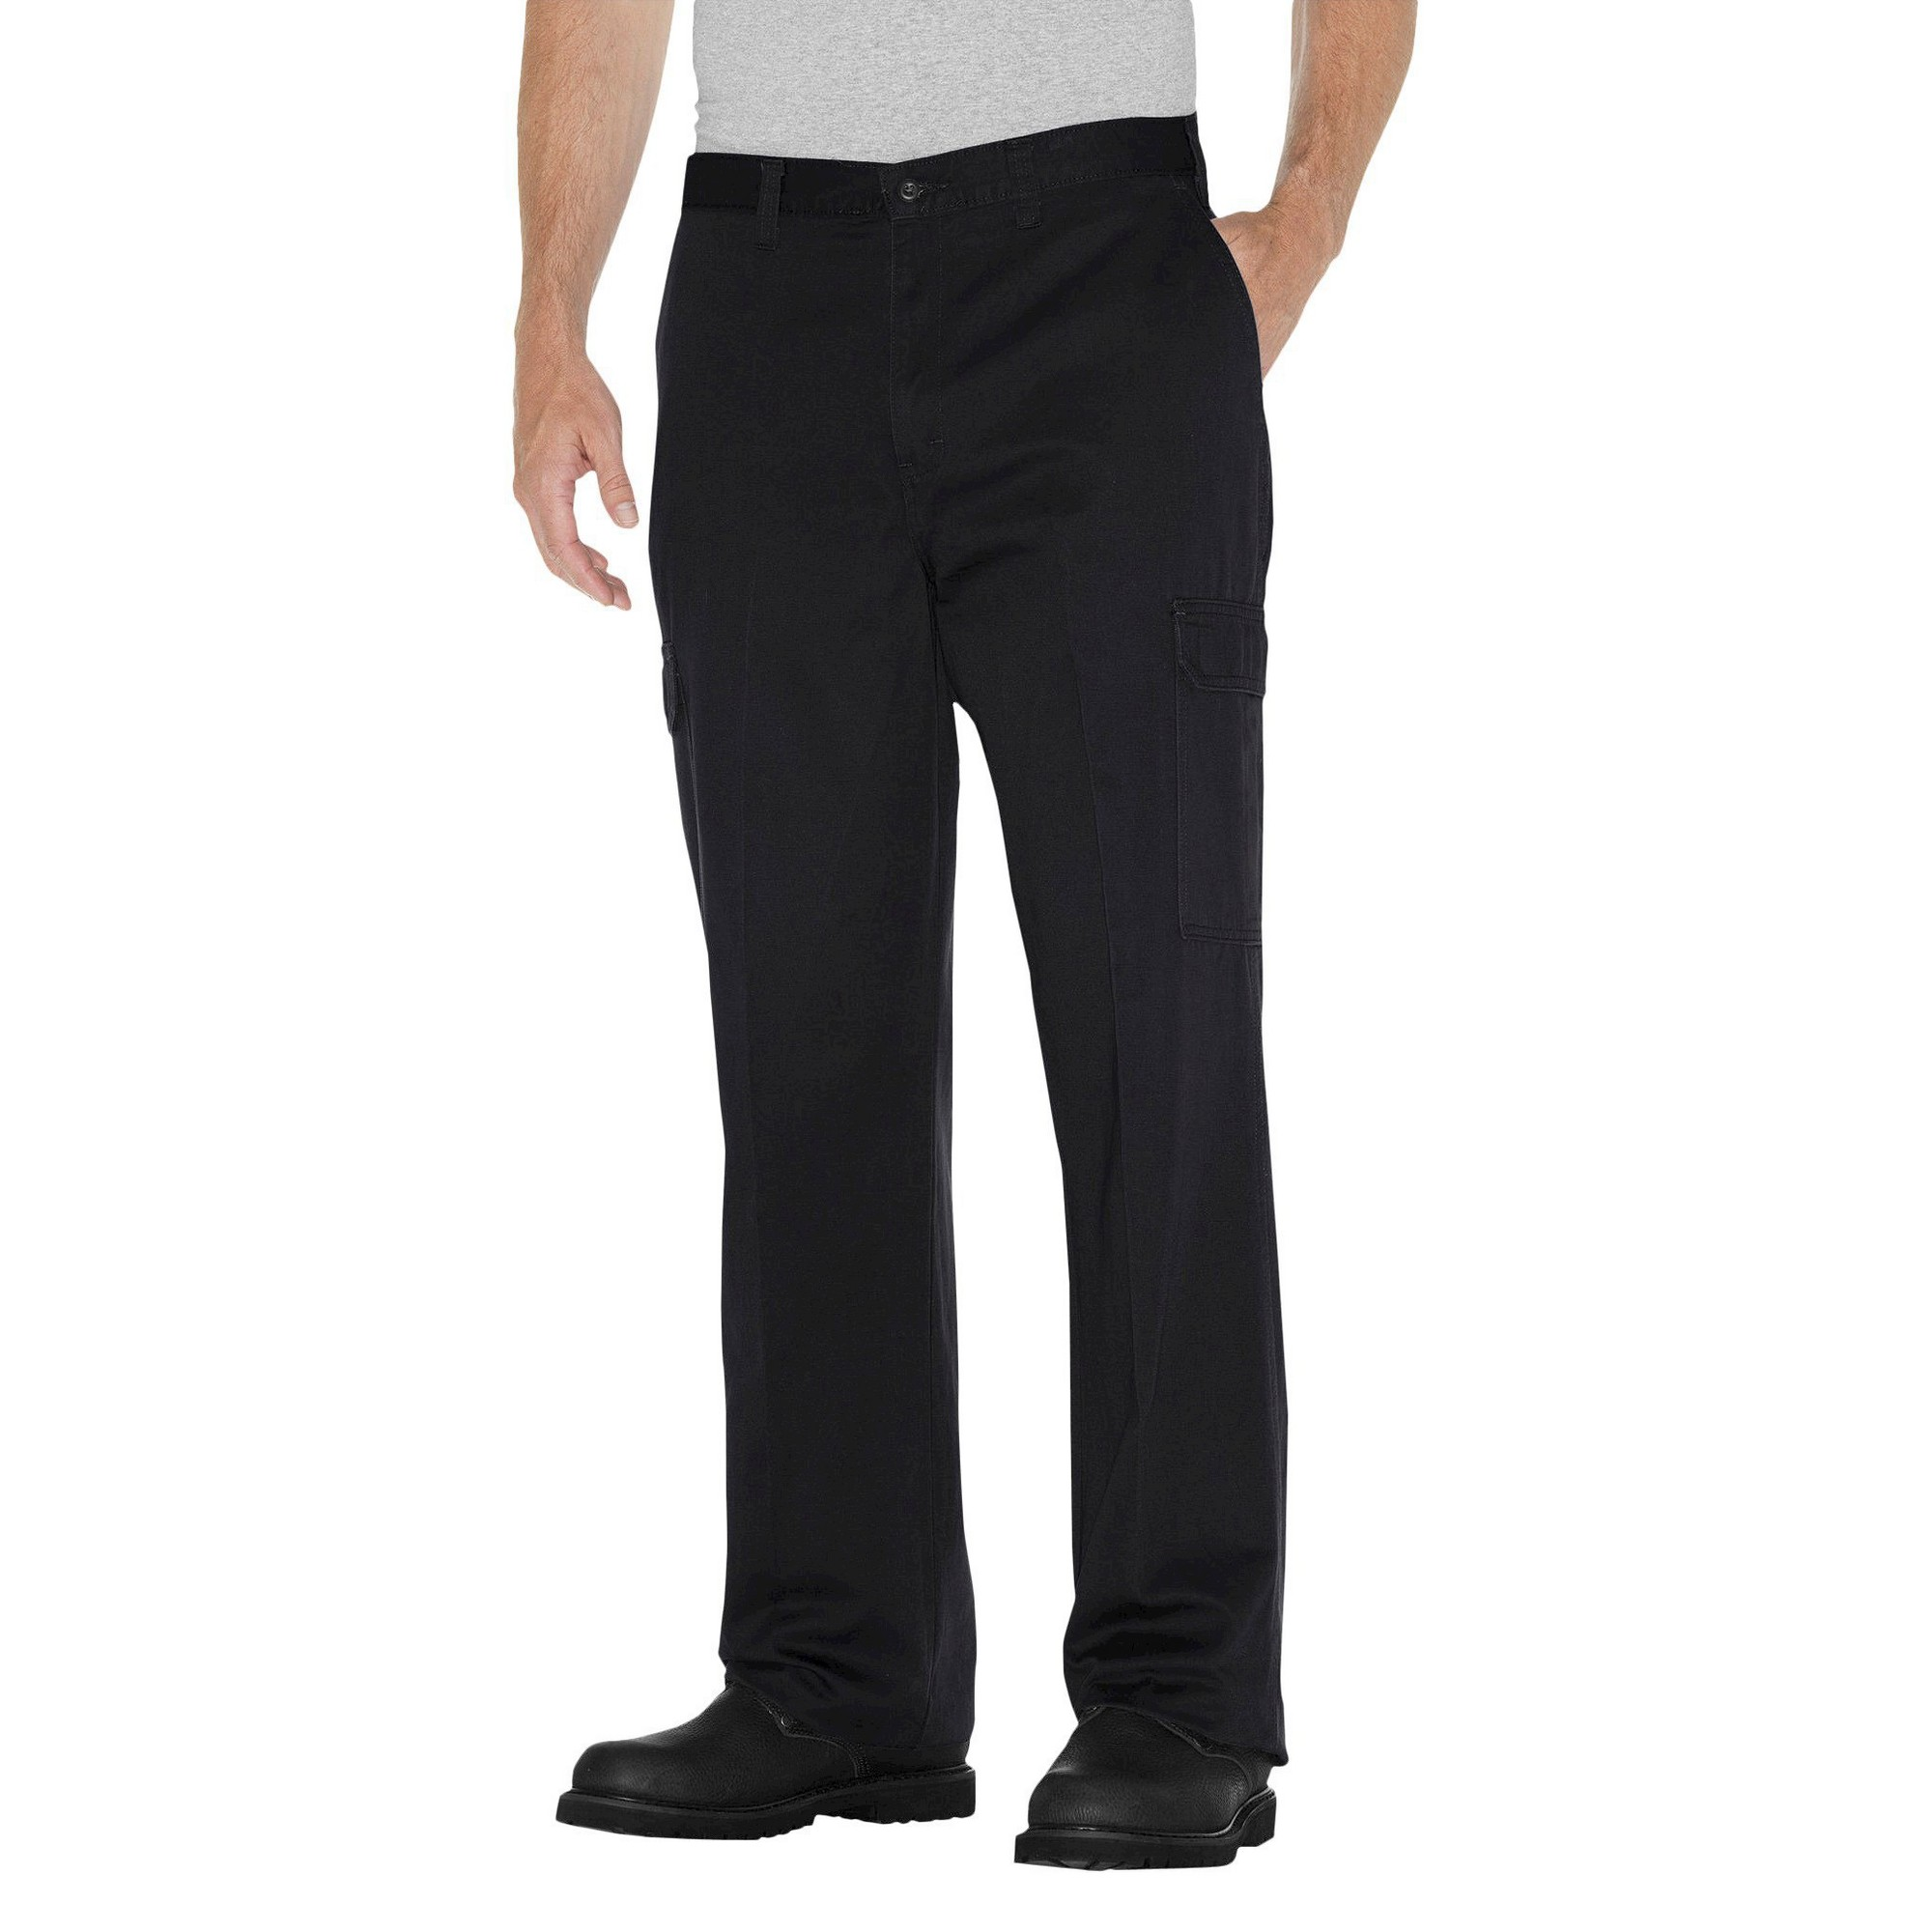 Dickies Men's Loose Straight Fit Cotton Cargo Work Pants- Black 32x34